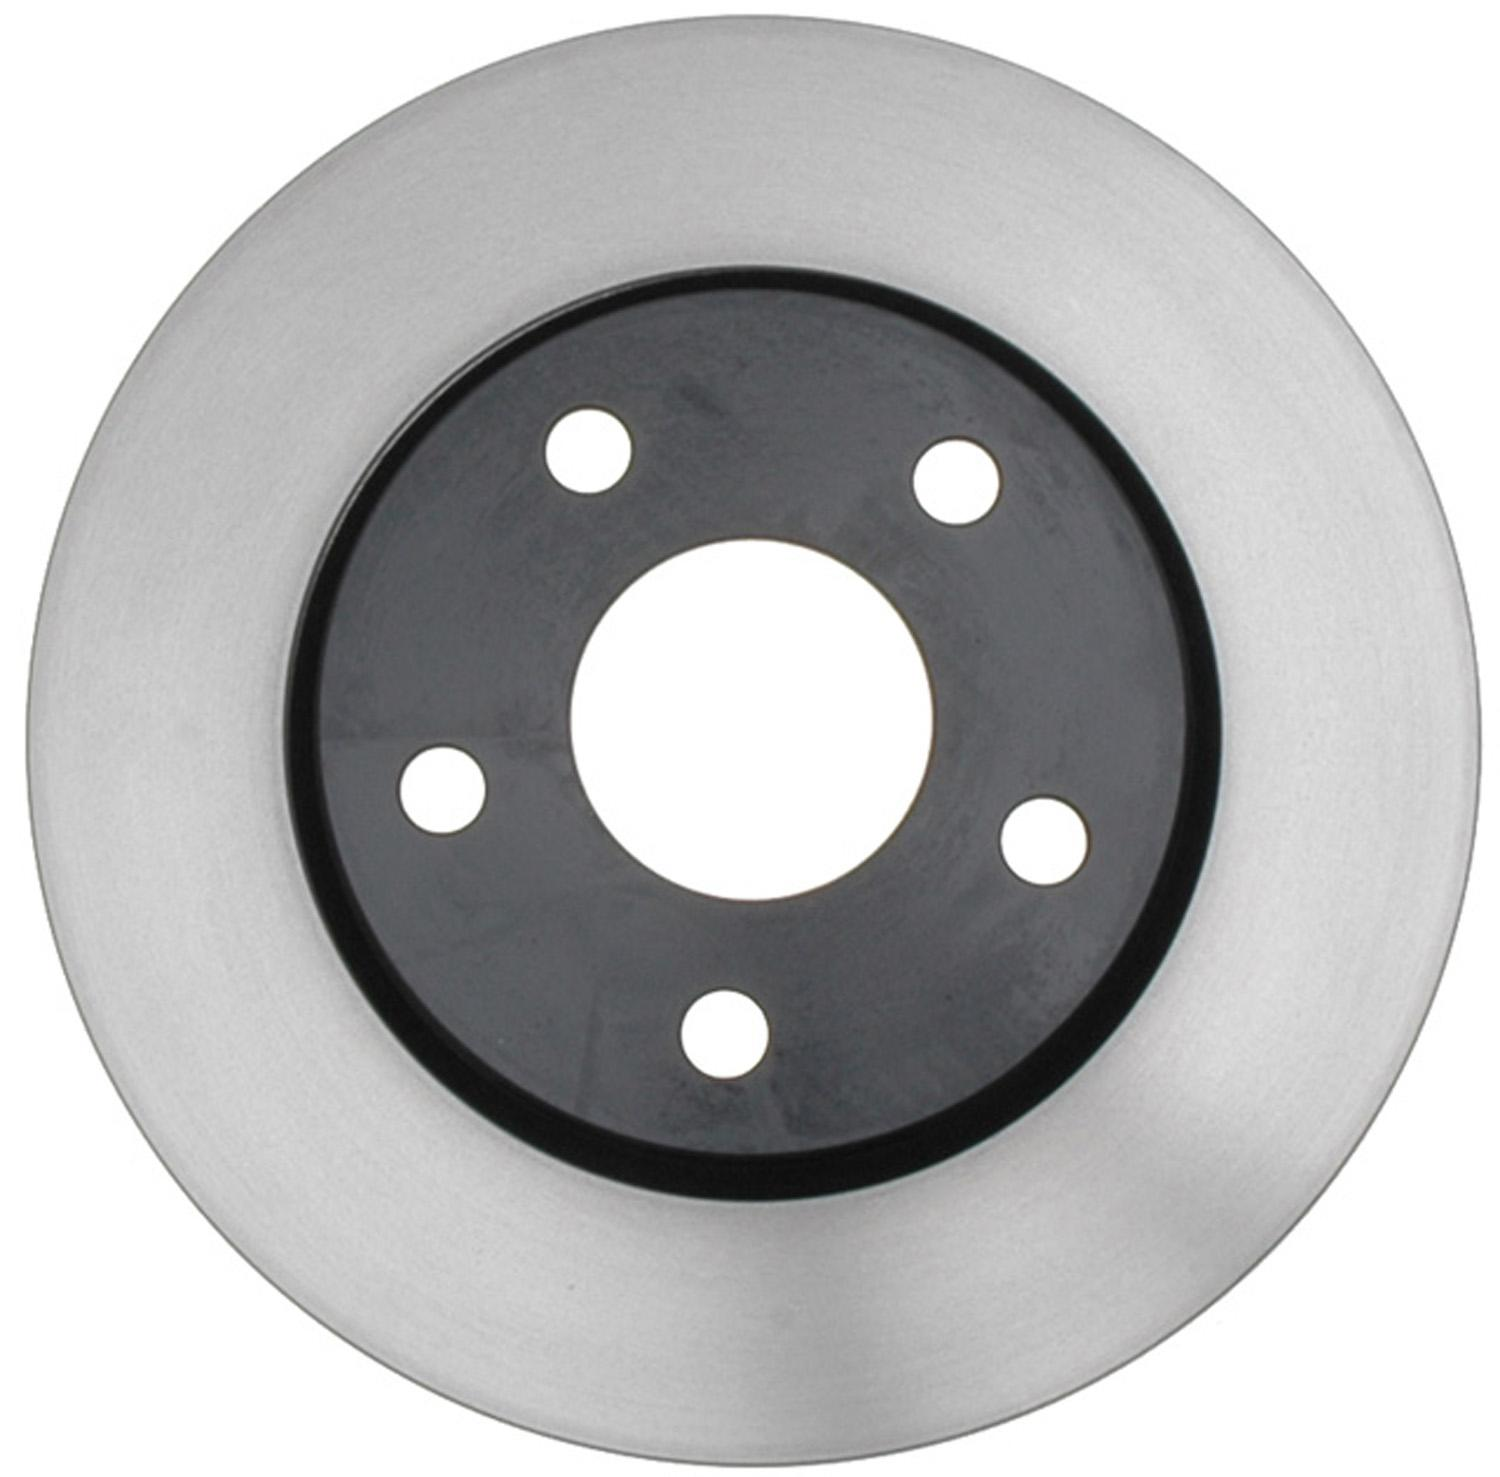 ACDELCO PROFESSIONAL BRAKES - Disc Brake Rotor (Front) - ADU 18A2464